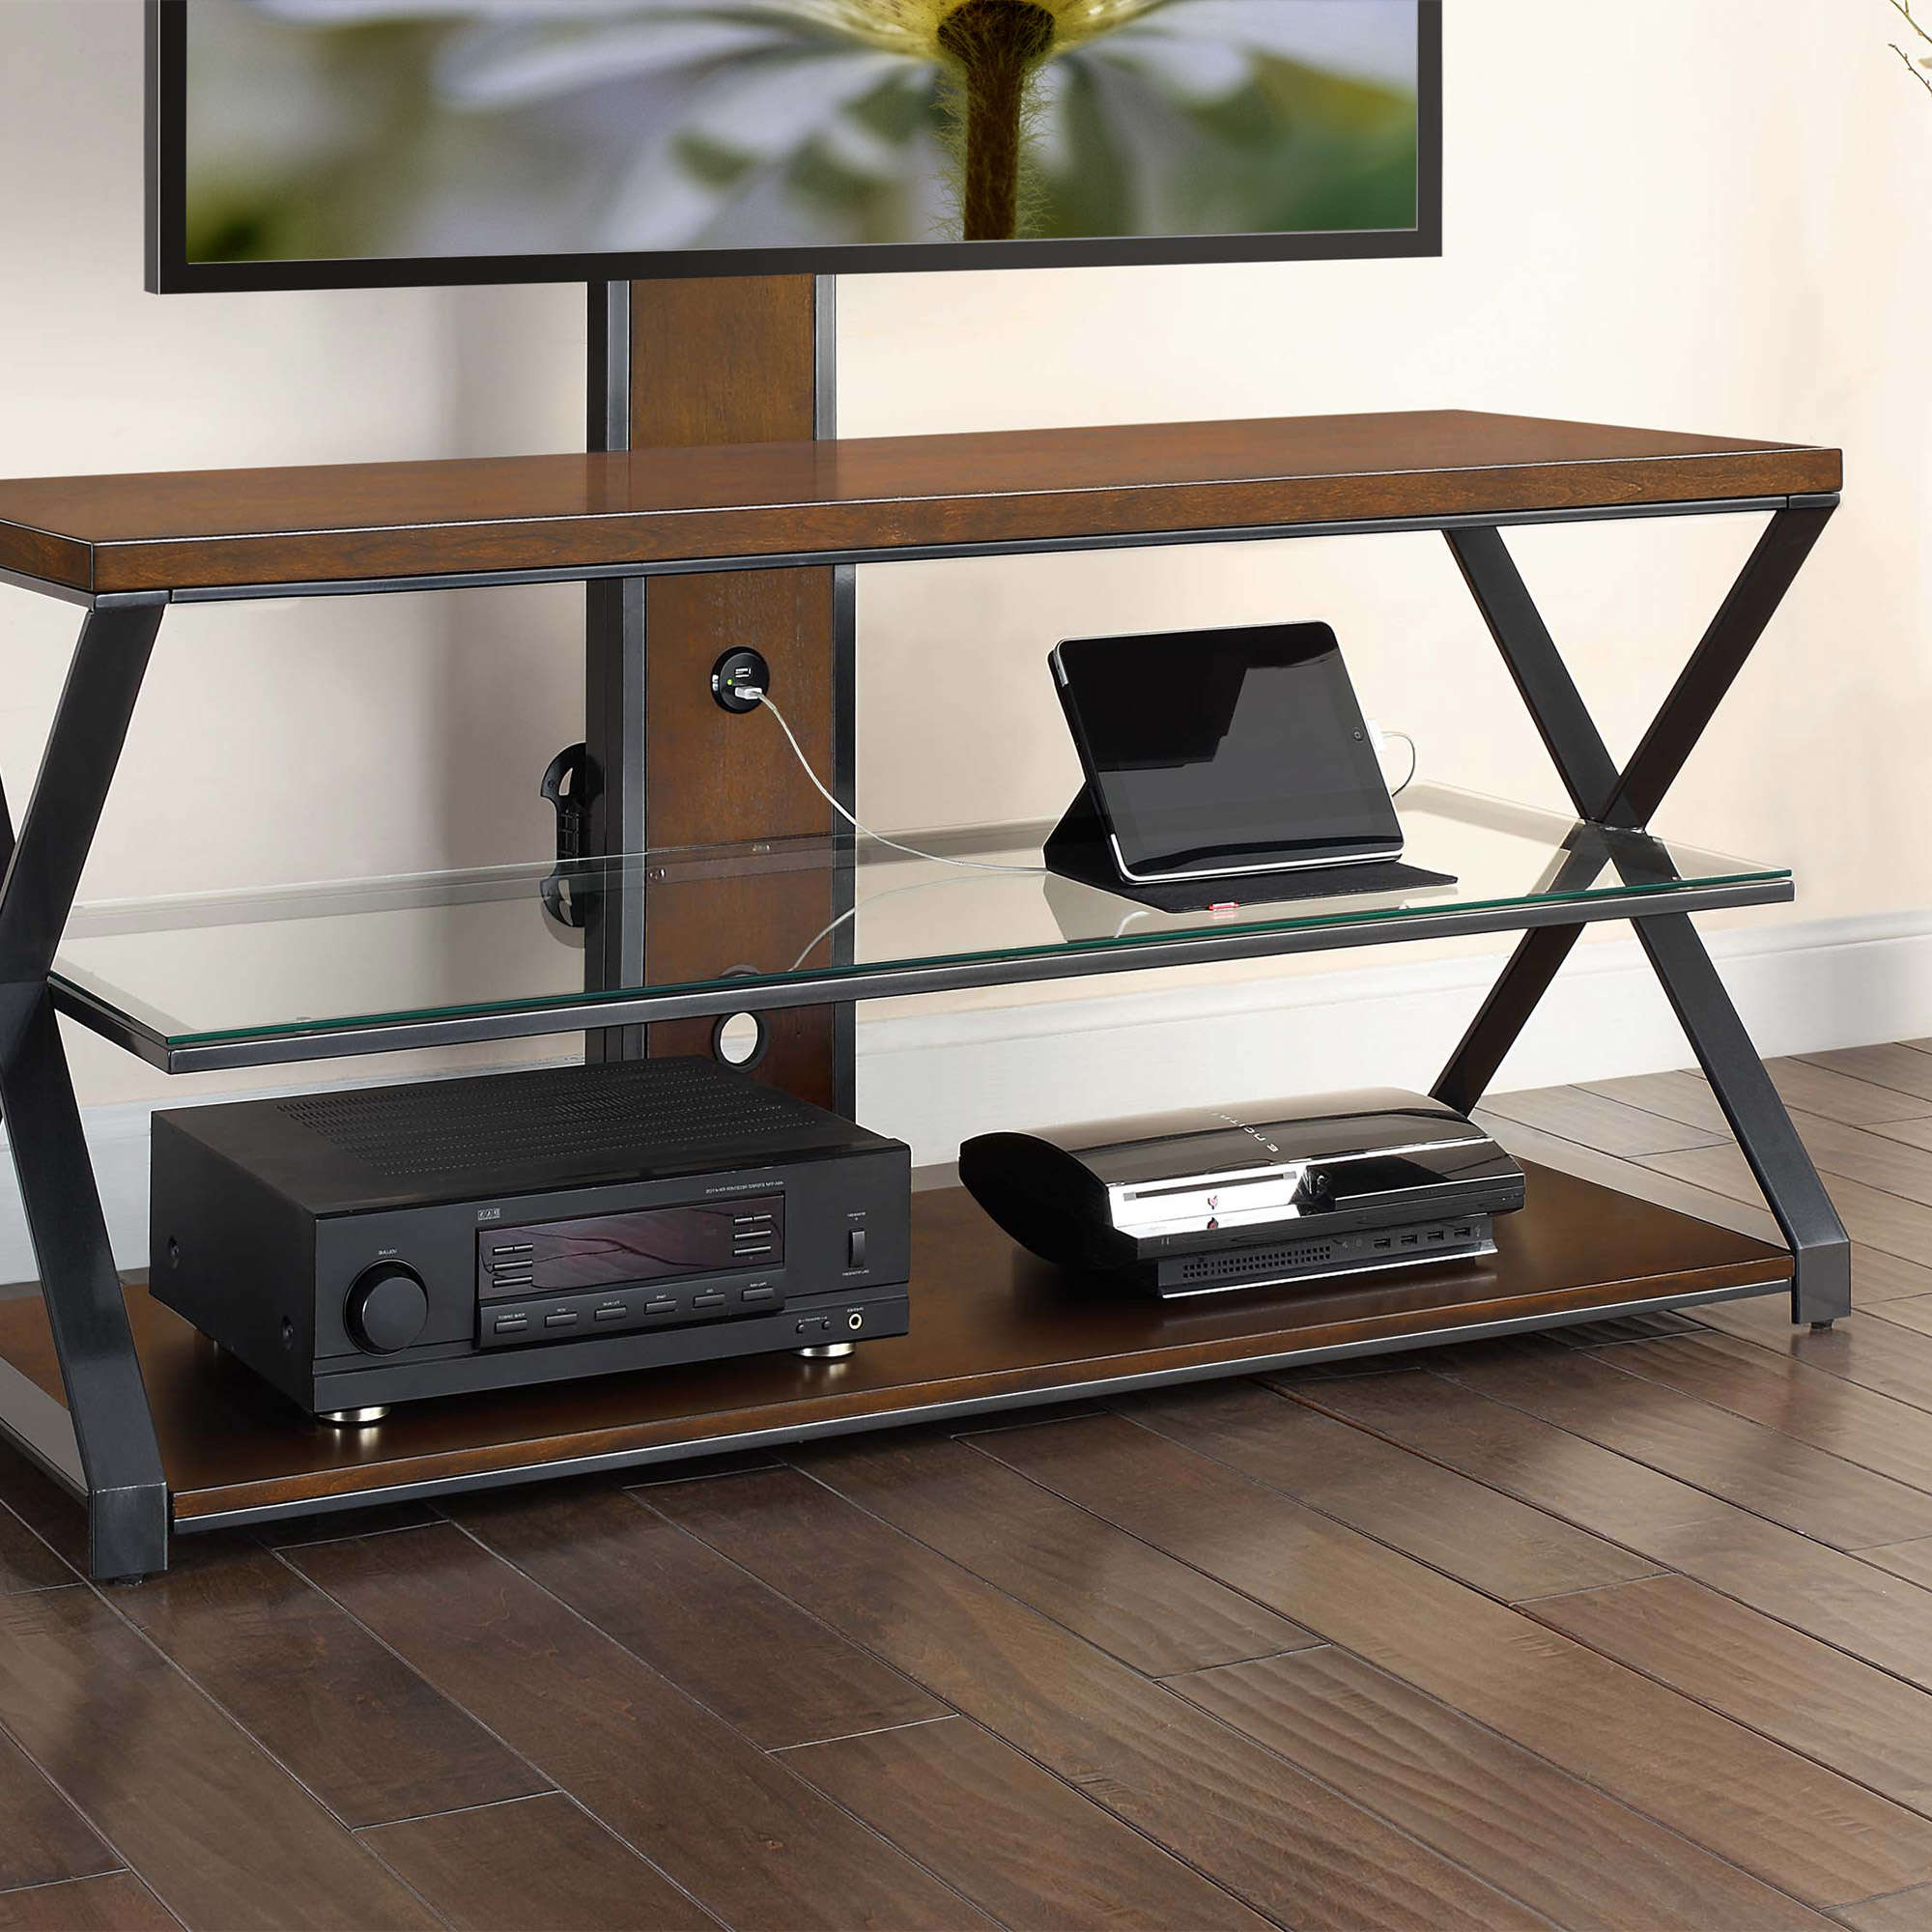 "Jaxon 3 In 1 Cognac Tv Stand For Tvs Up To 70"" – Walmart For Jaxon 71 Inch Tv Stands (View 5 of 20)"